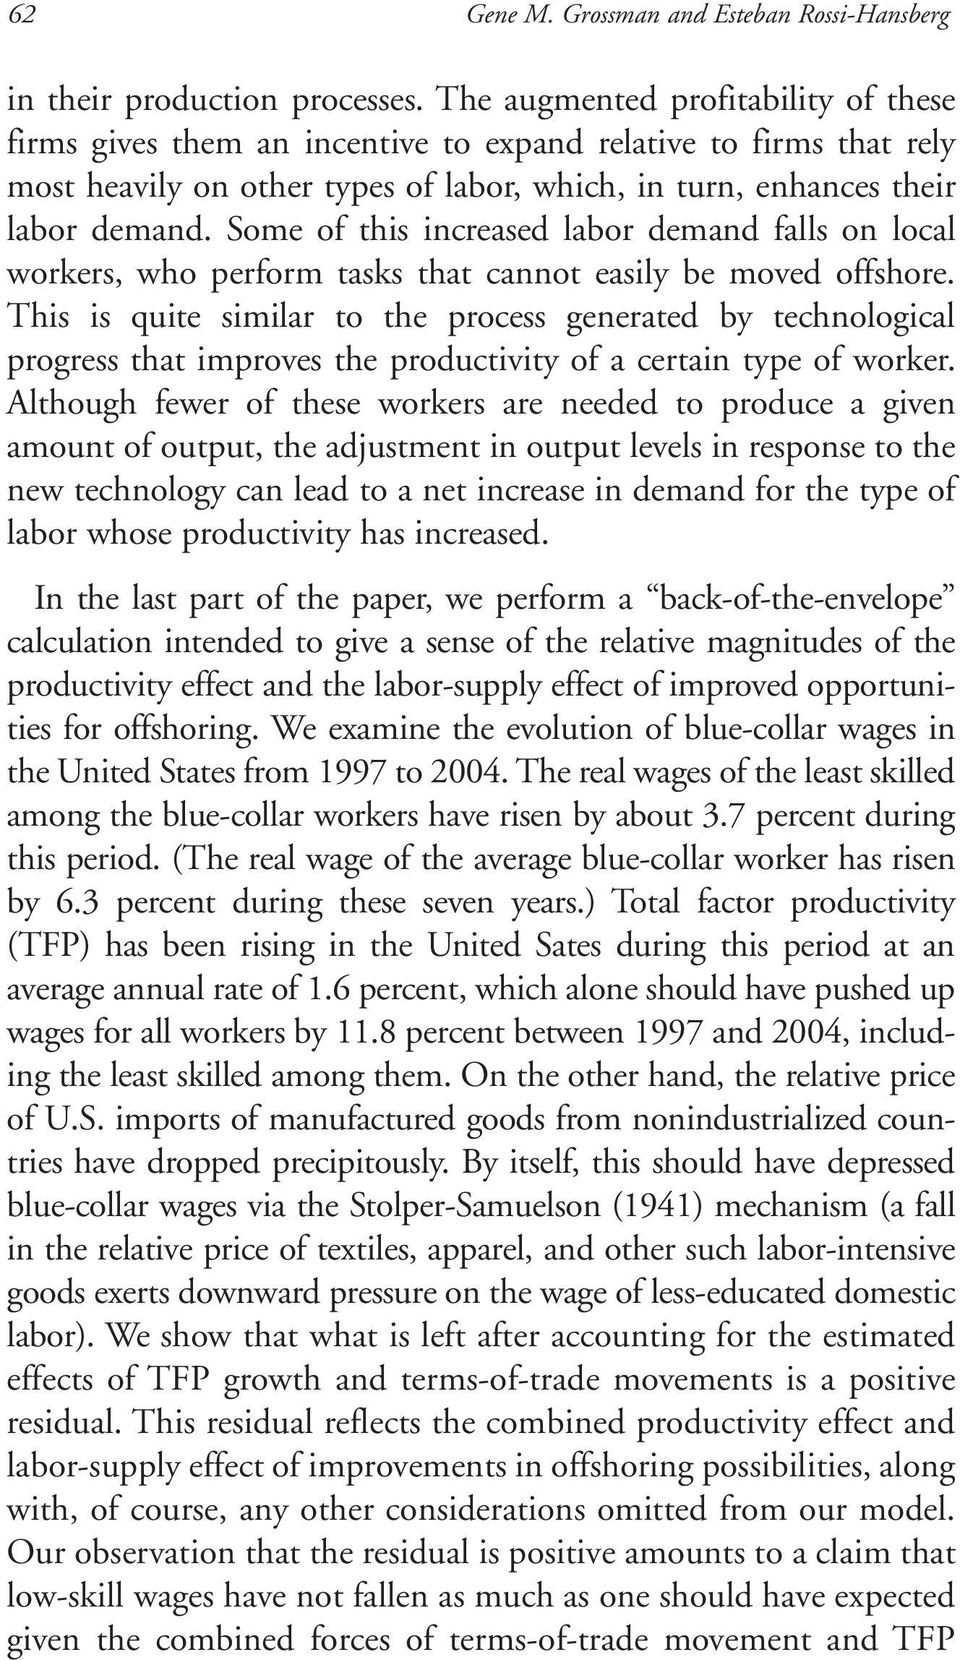 Some of this increased labor demand falls on local workers, who perform tasks that cannot easily be moved offshore.